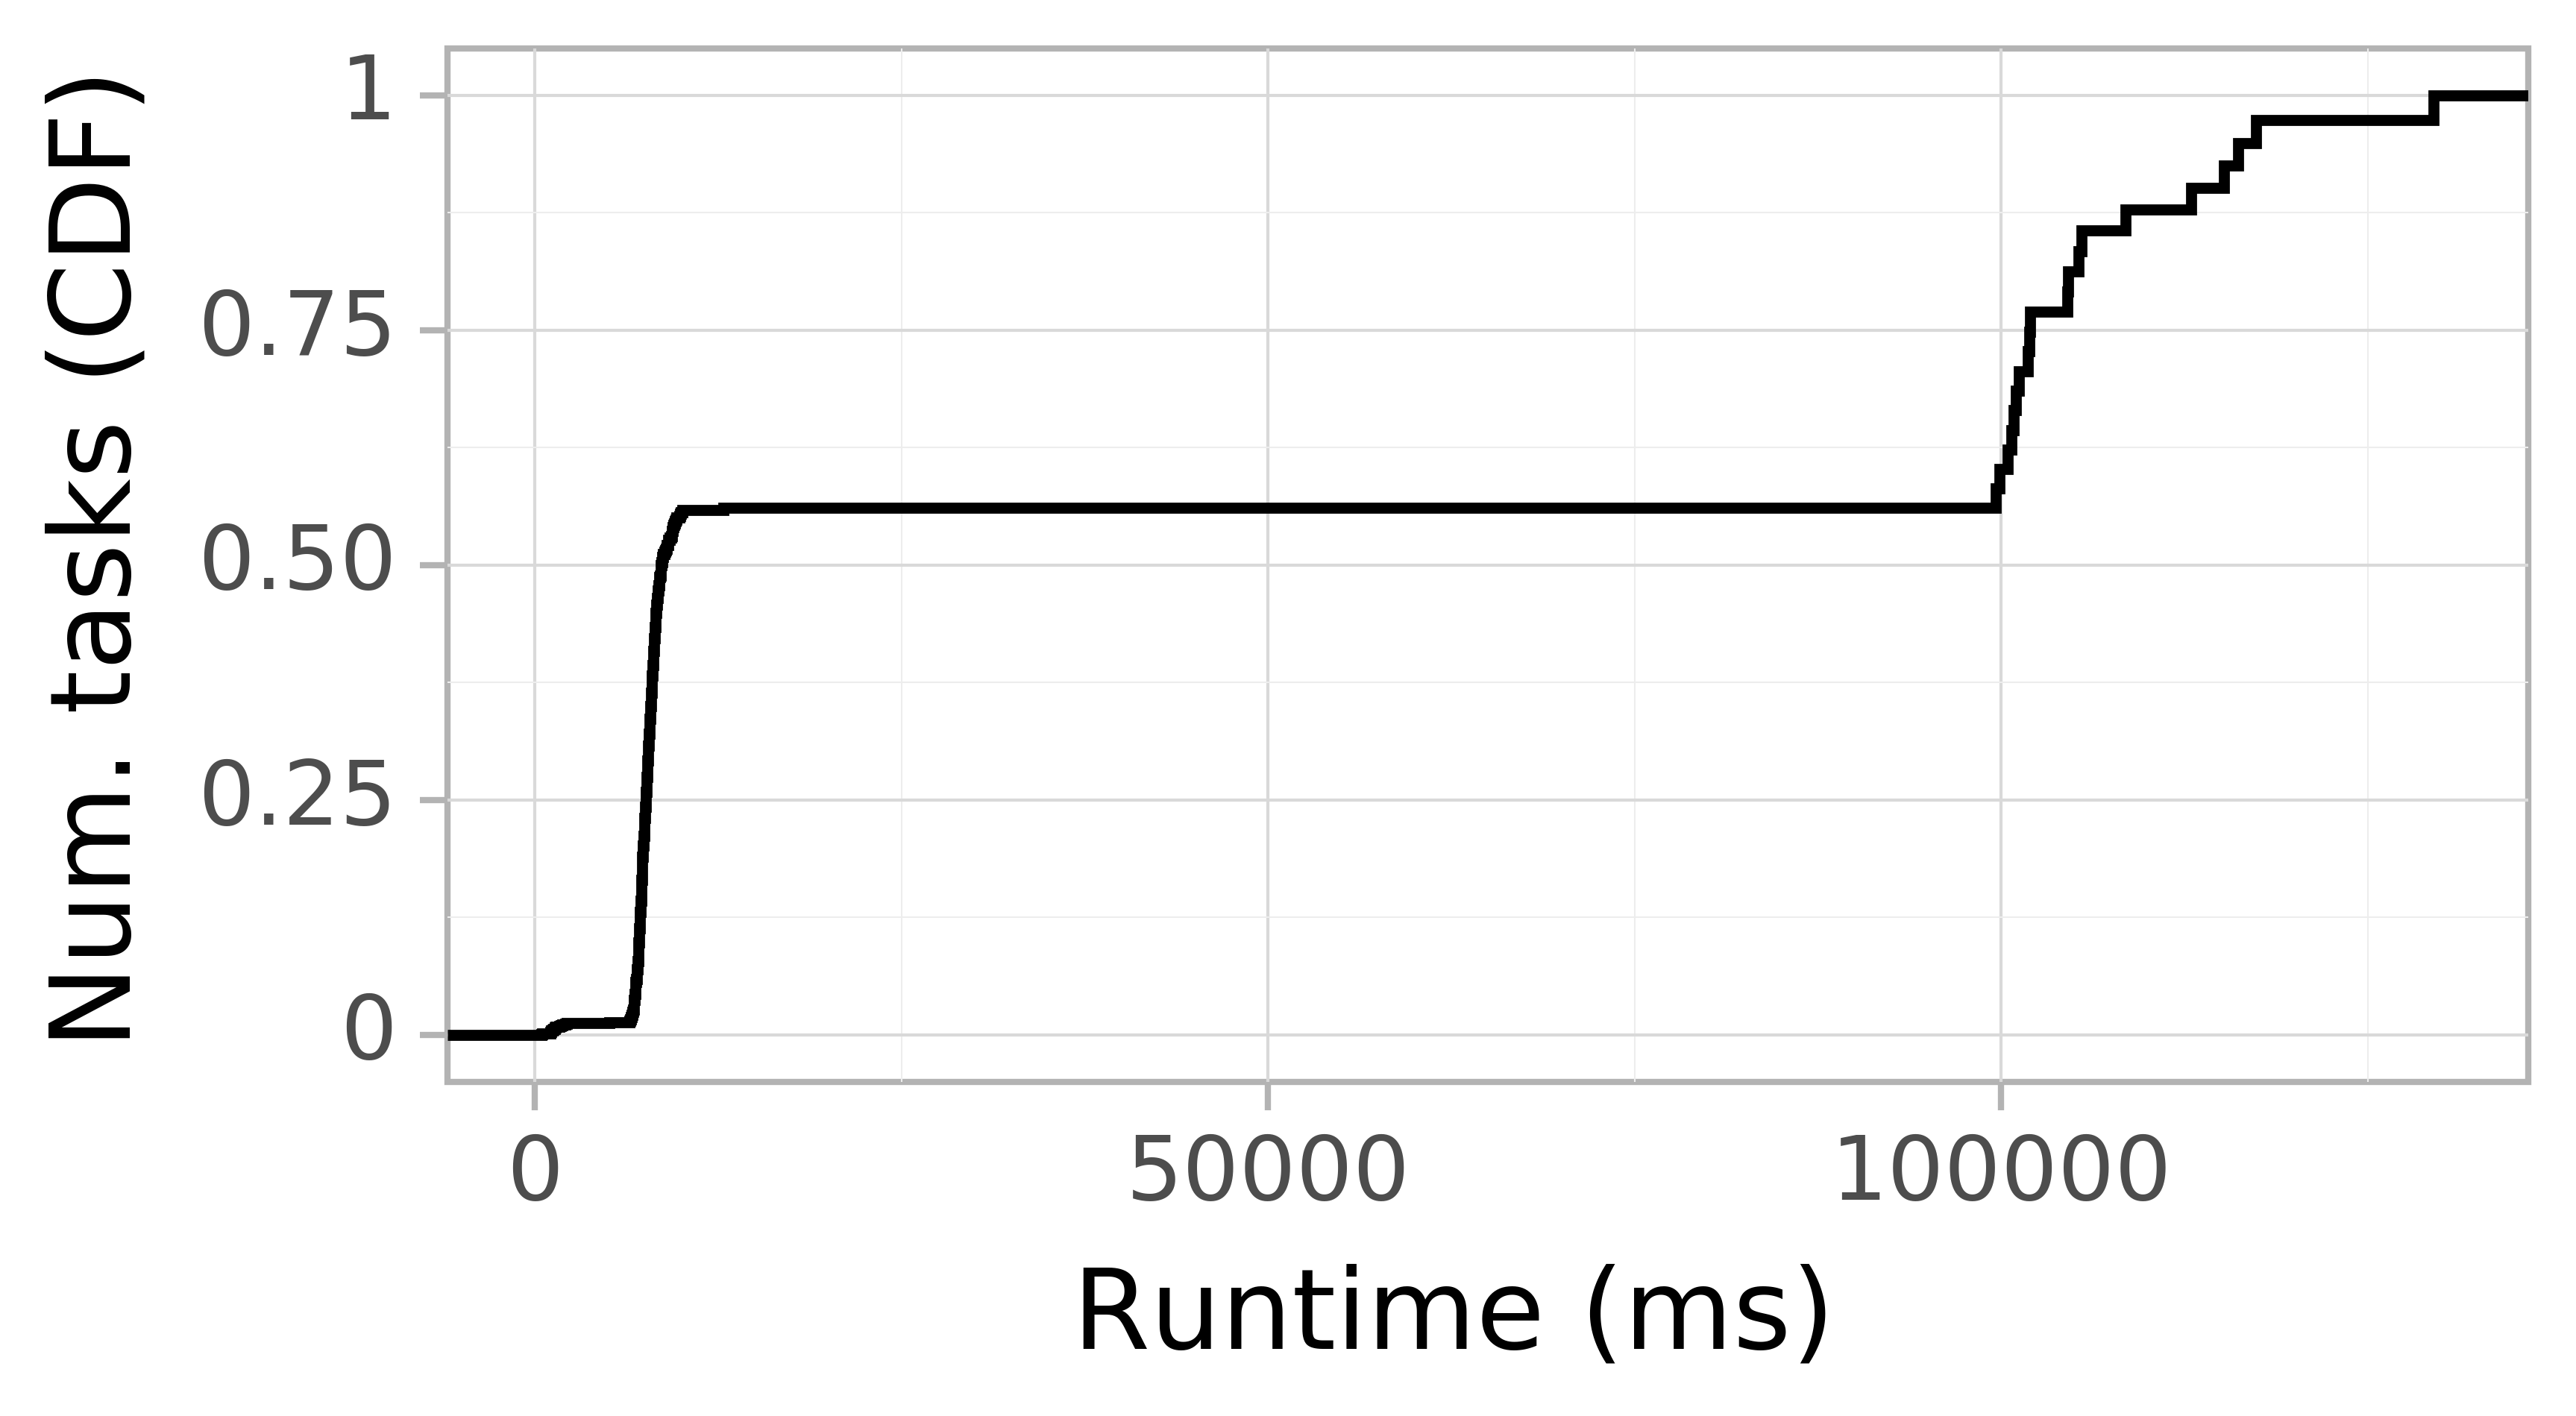 Task runtime CDF graph for the askalon-new_ee30 trace.